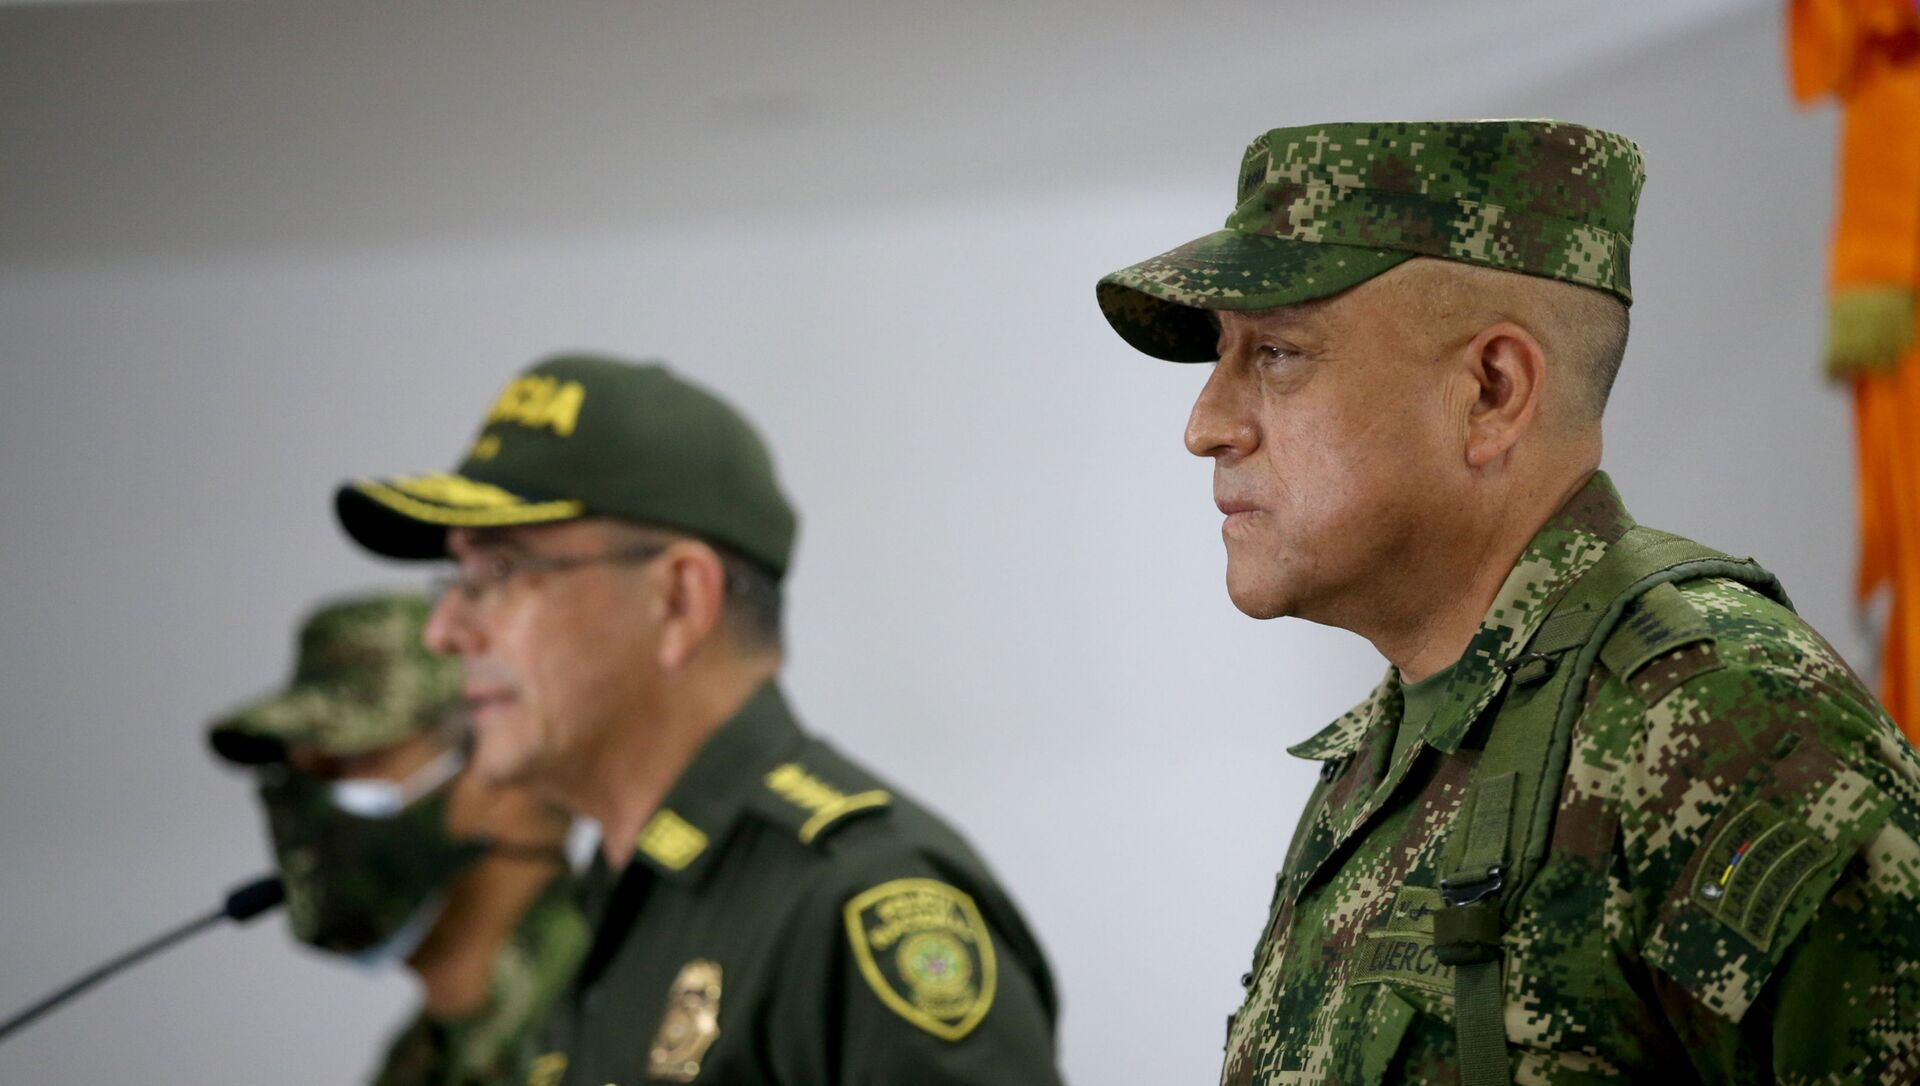 Commander of the Colombian Military Forces, General Luis Fernando Navarro listens as Colombia's National Police Director General Jorge Luis Vargas speaks during a news conference about the participation of several Colombians in the assassination of Haitian President Jovenel Moise, in Bogota, Colombia July 9, 2021. - Sputnik International, 1920, 04.08.2021